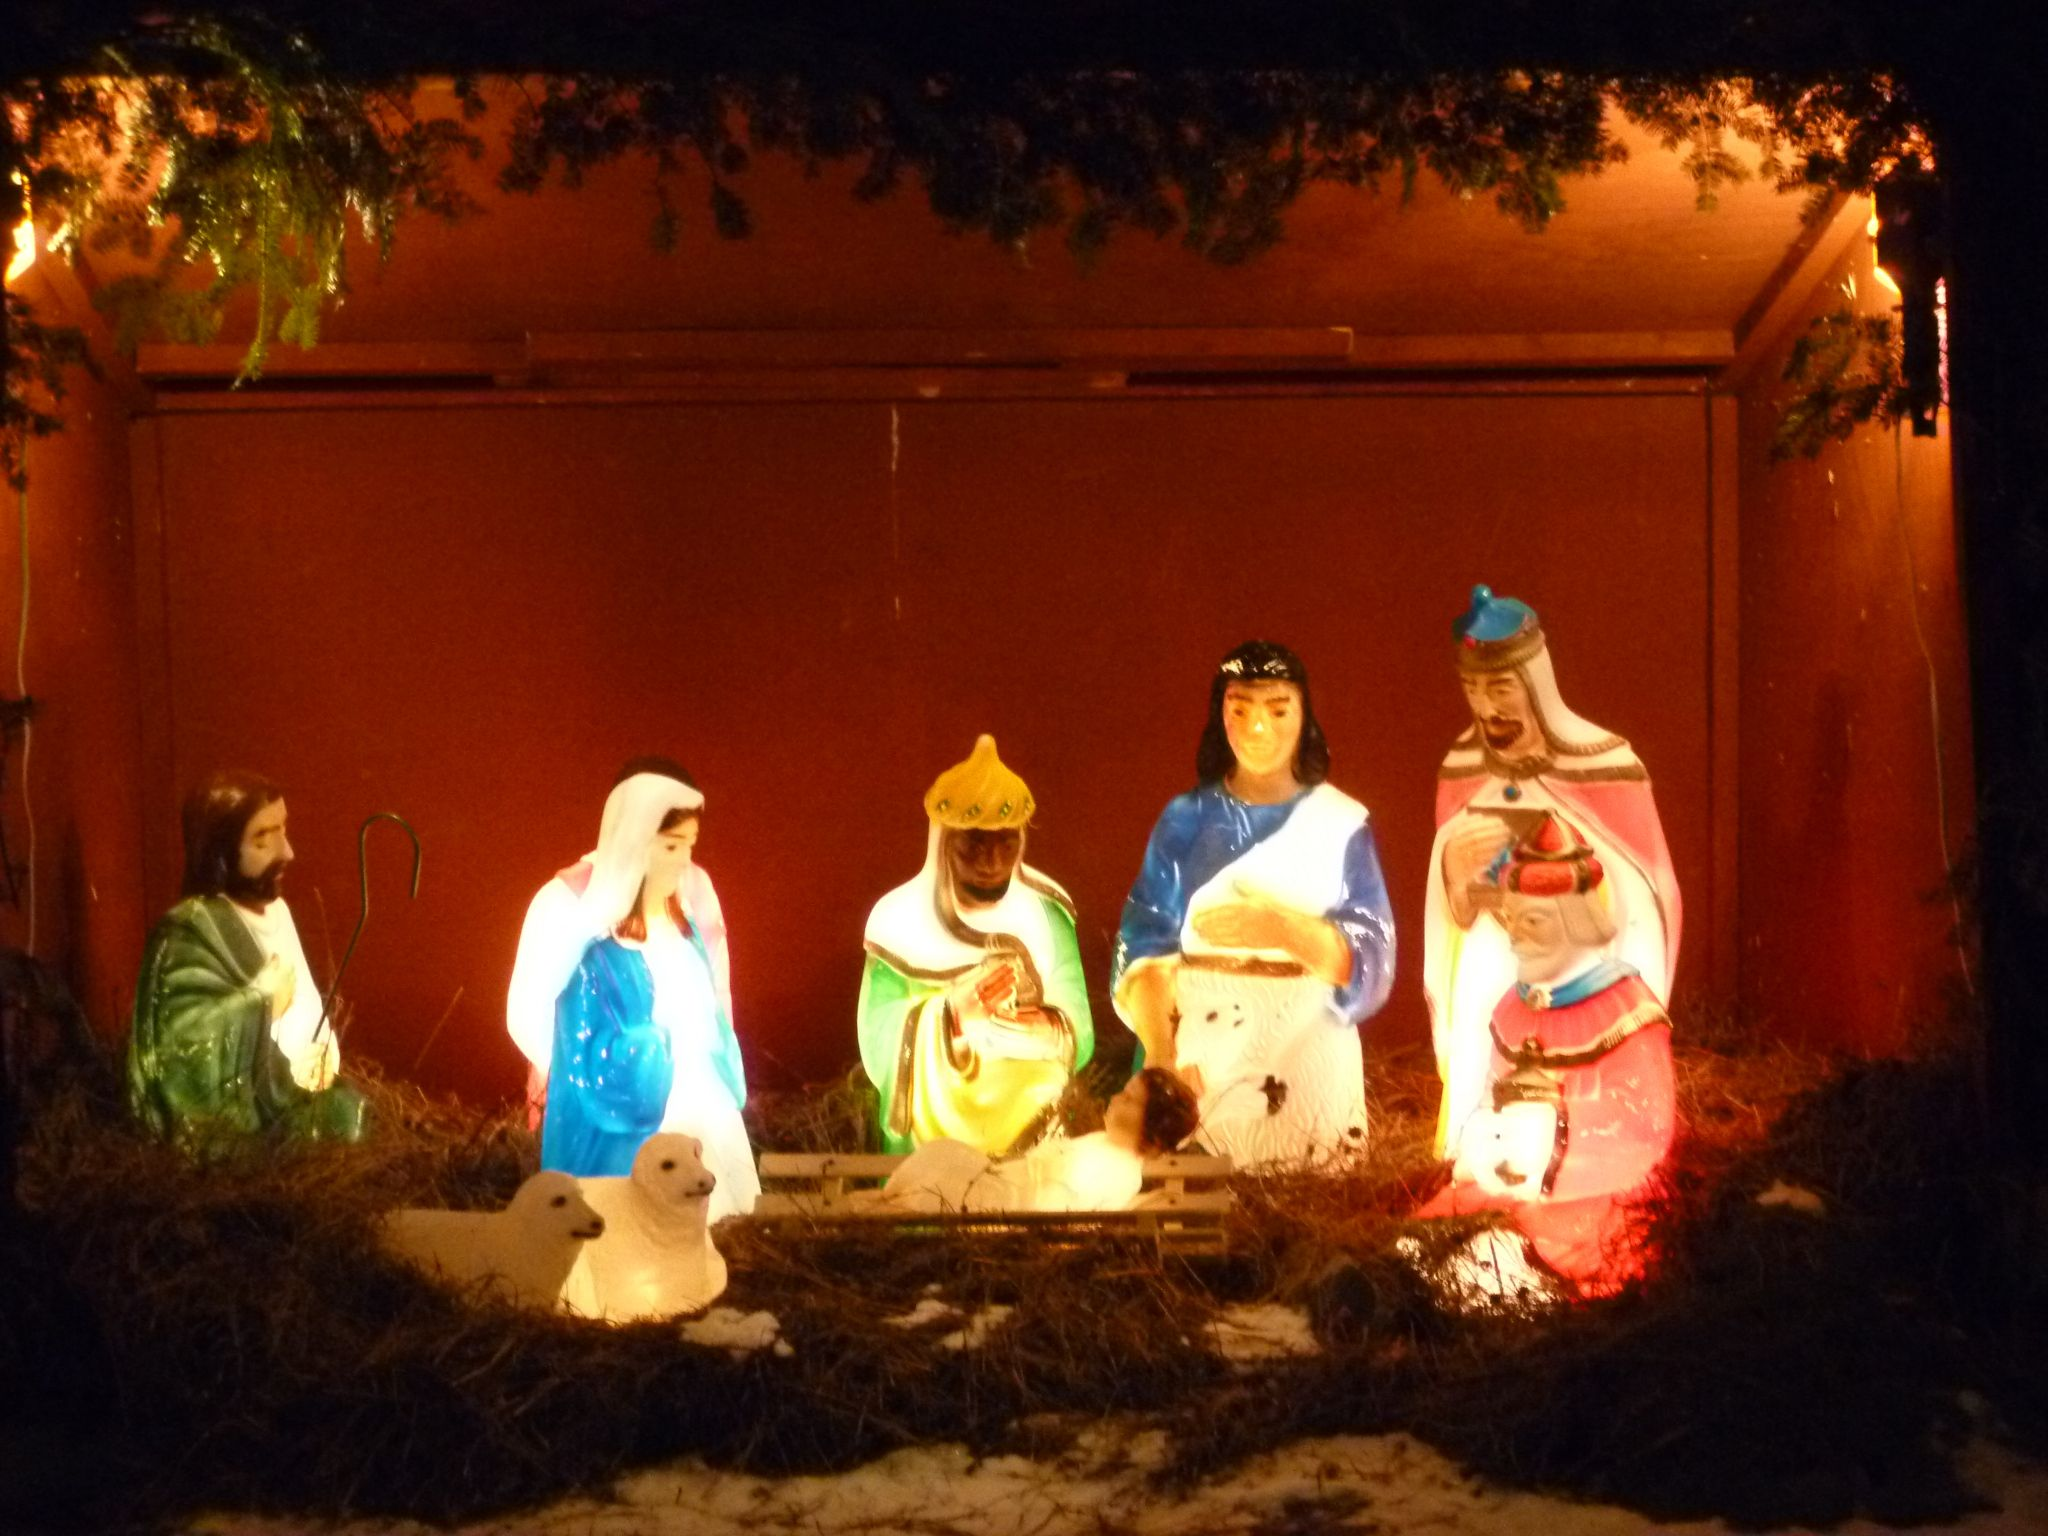 Light Up Nativity Sets For Outdoors Best Interior House Paint Check More At Http Www Mtbasic Christmas Nativity Set Outdoor Nativity Scene Outdoor Nativity